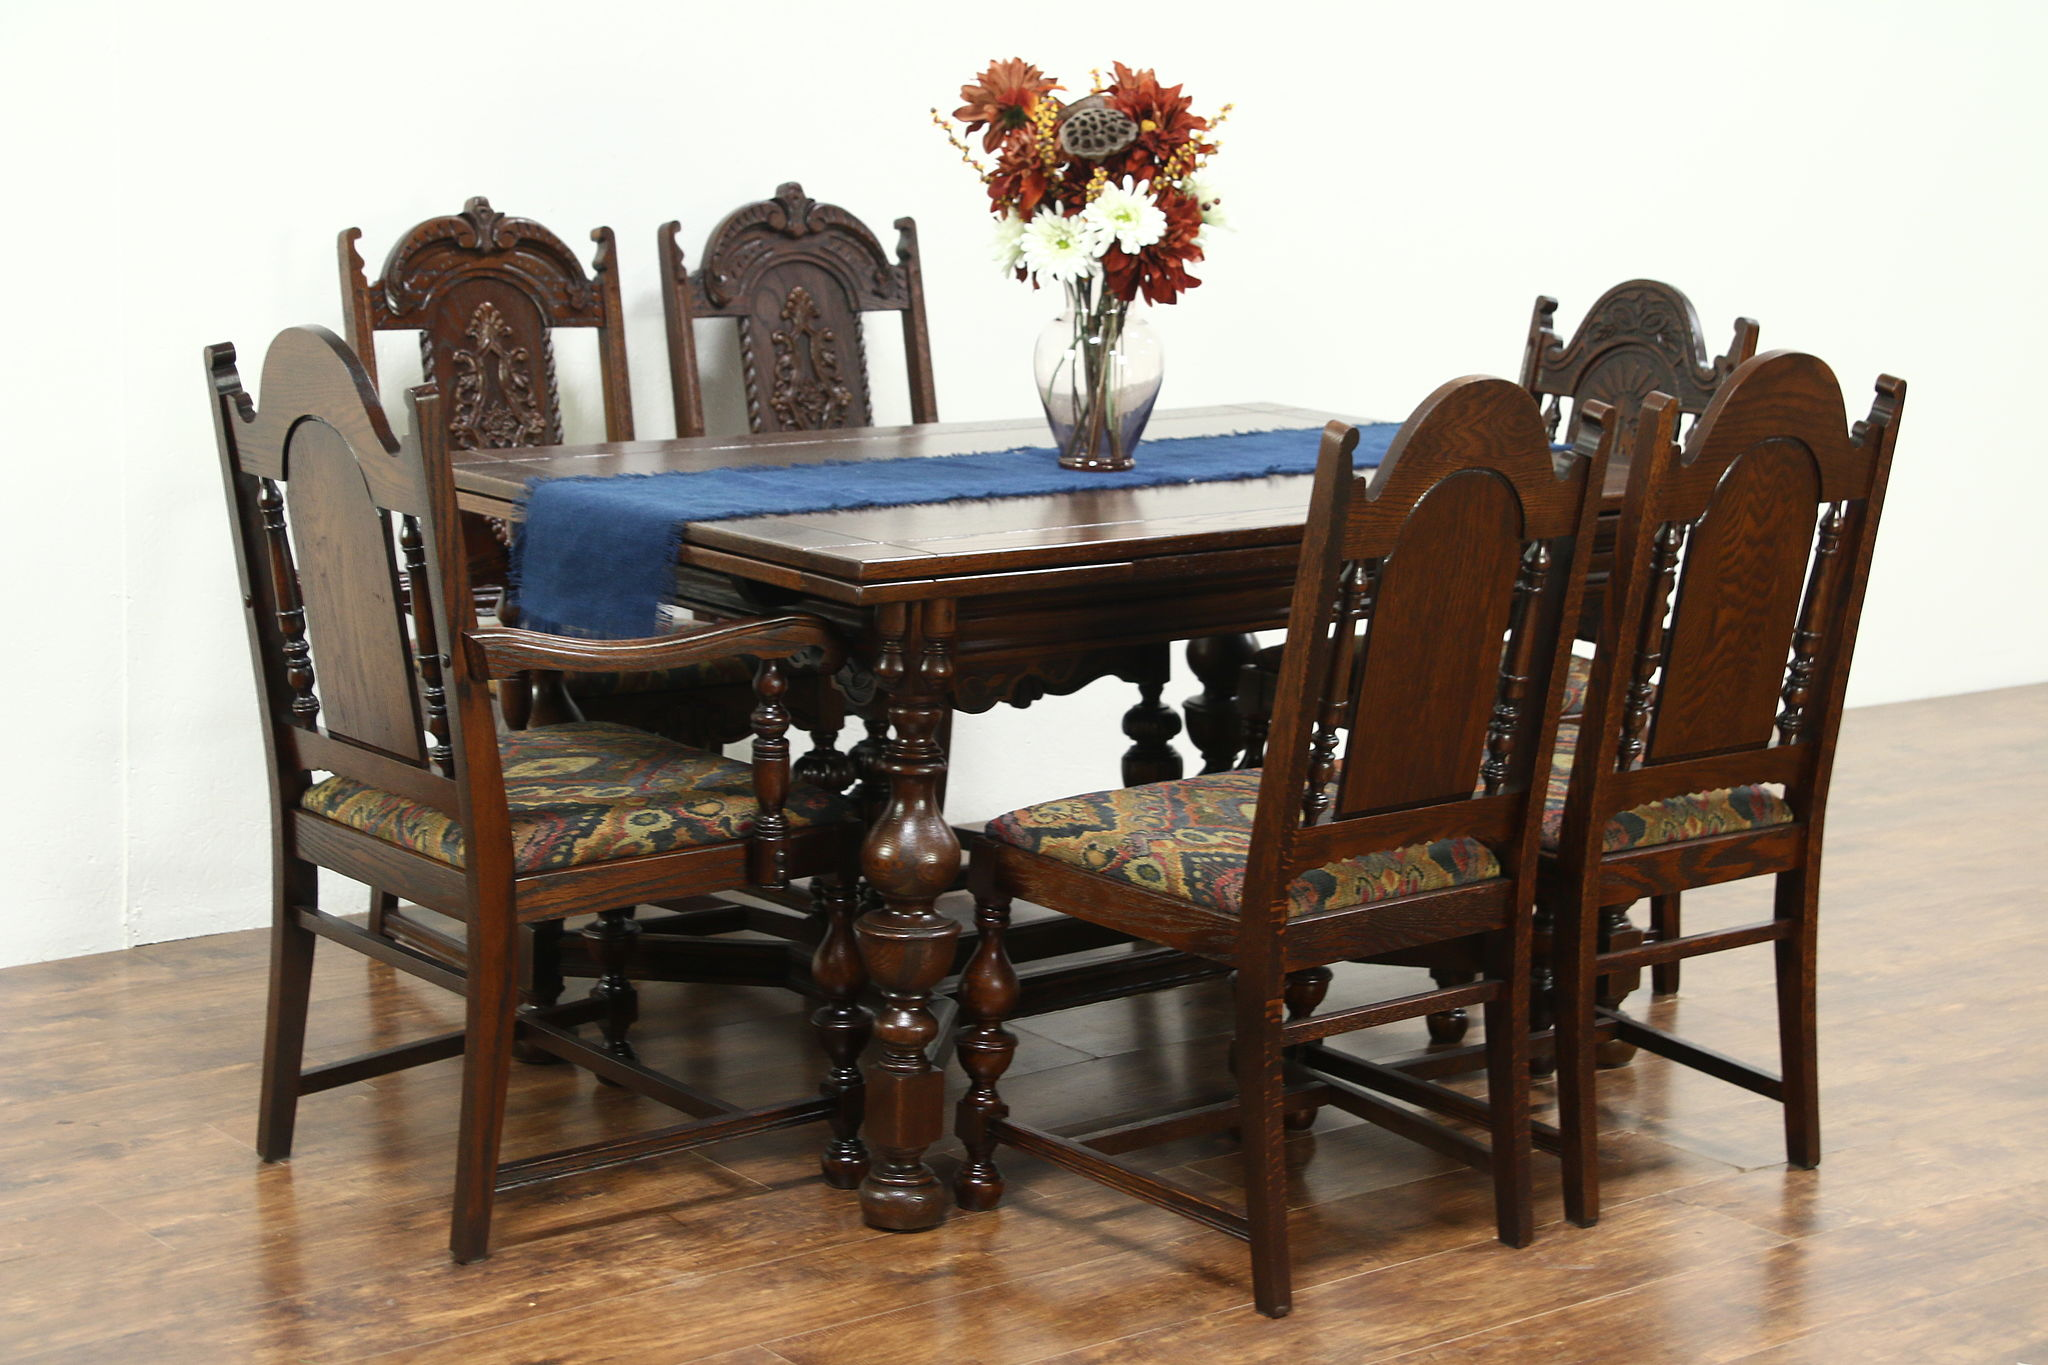 Dining Room Table With Pull Out Leaves 2